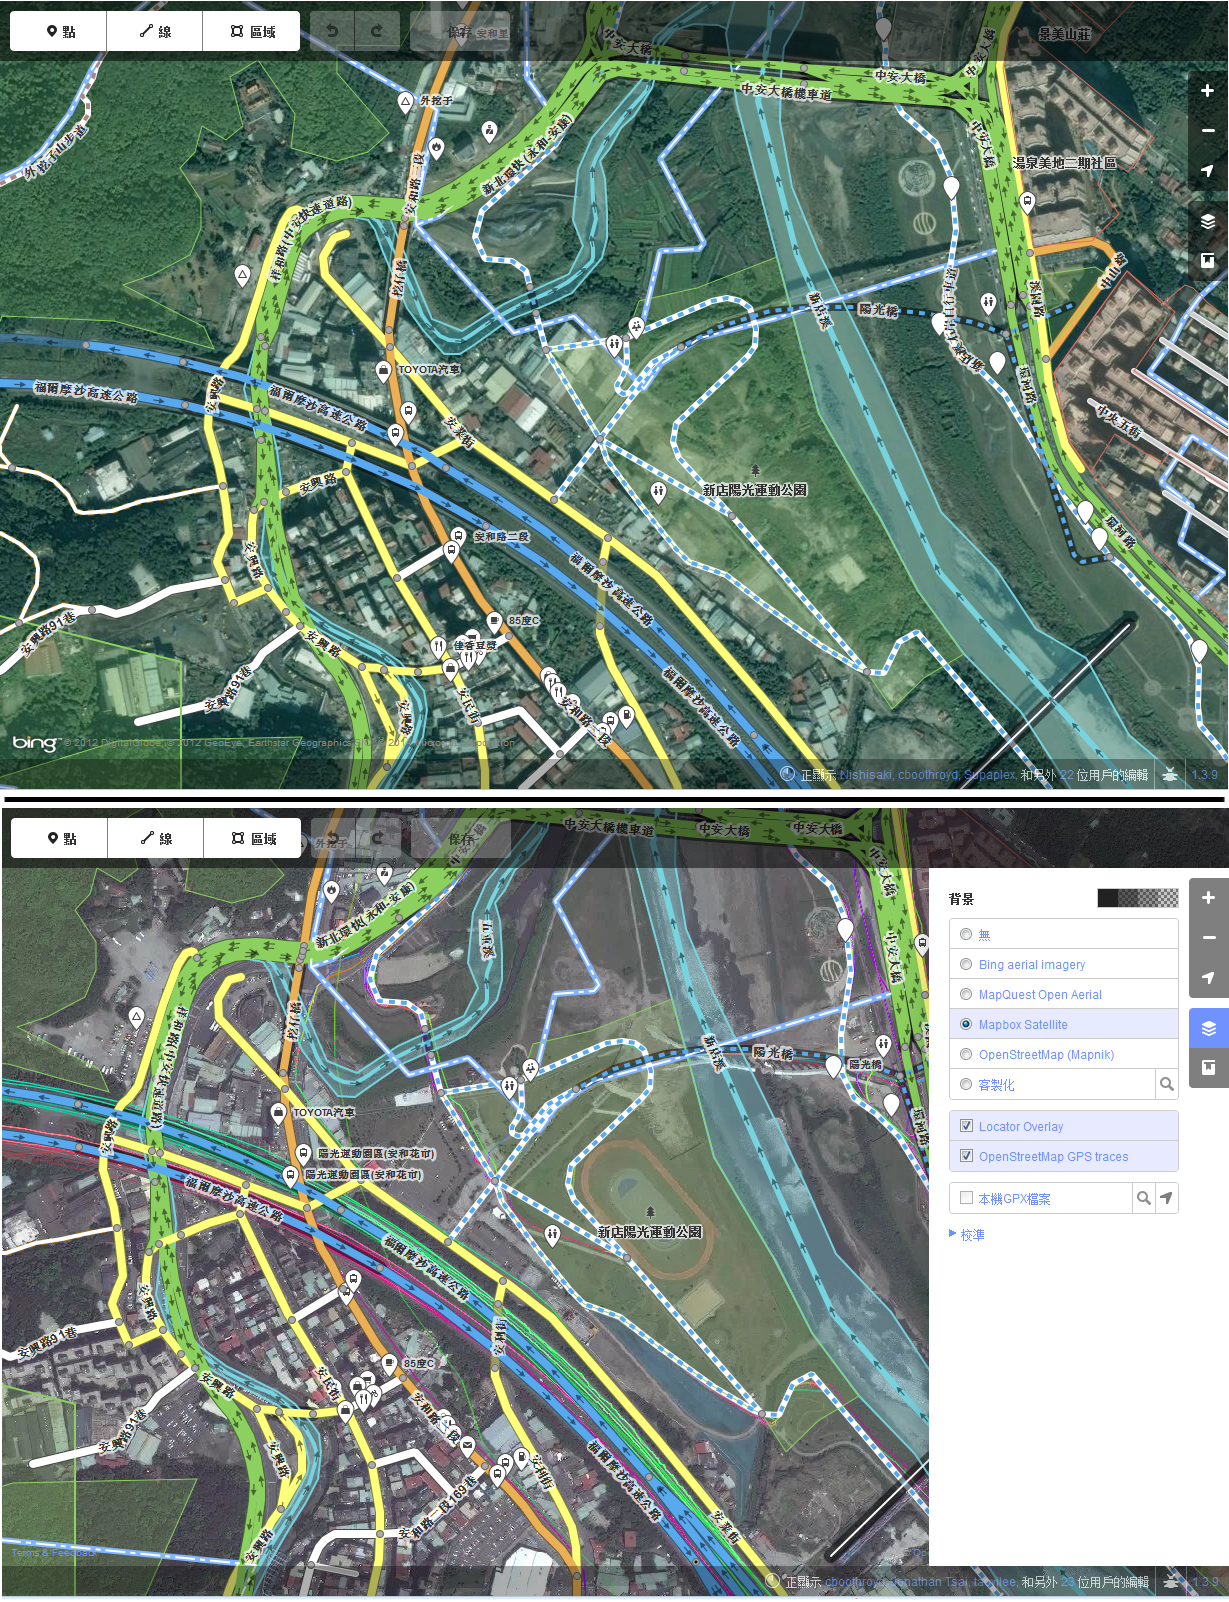 mapbox-and-bing-compare